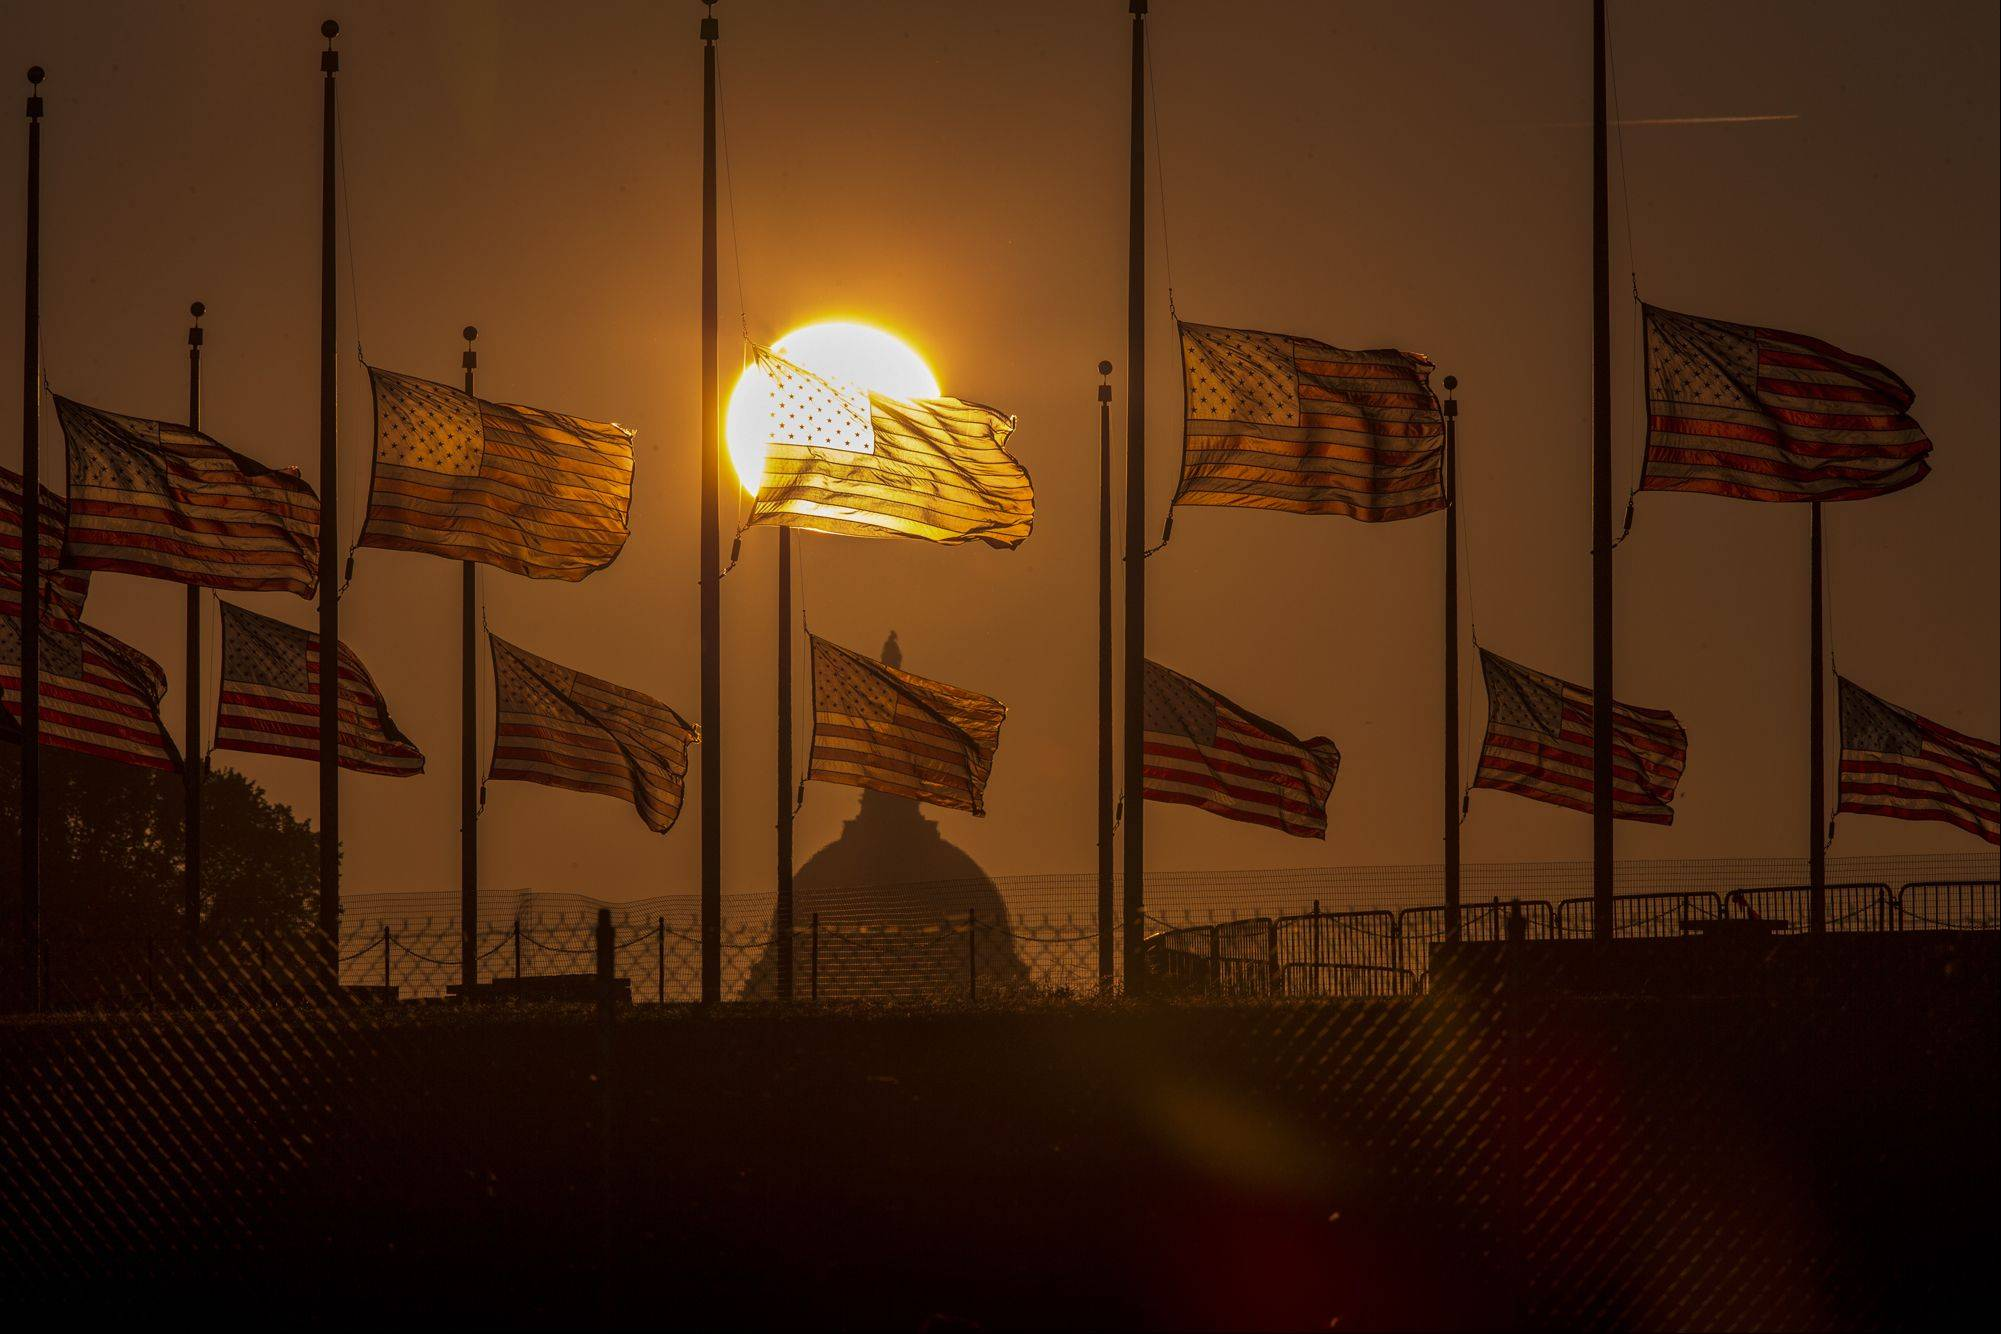 The flags surrounding the Washington Monument fly at half-staff as ordered by President Barack Obama following the deadly shooting Monday at the Washington Navy Yard, Tuesday morning, Sept. 17, 2013, in Washington.